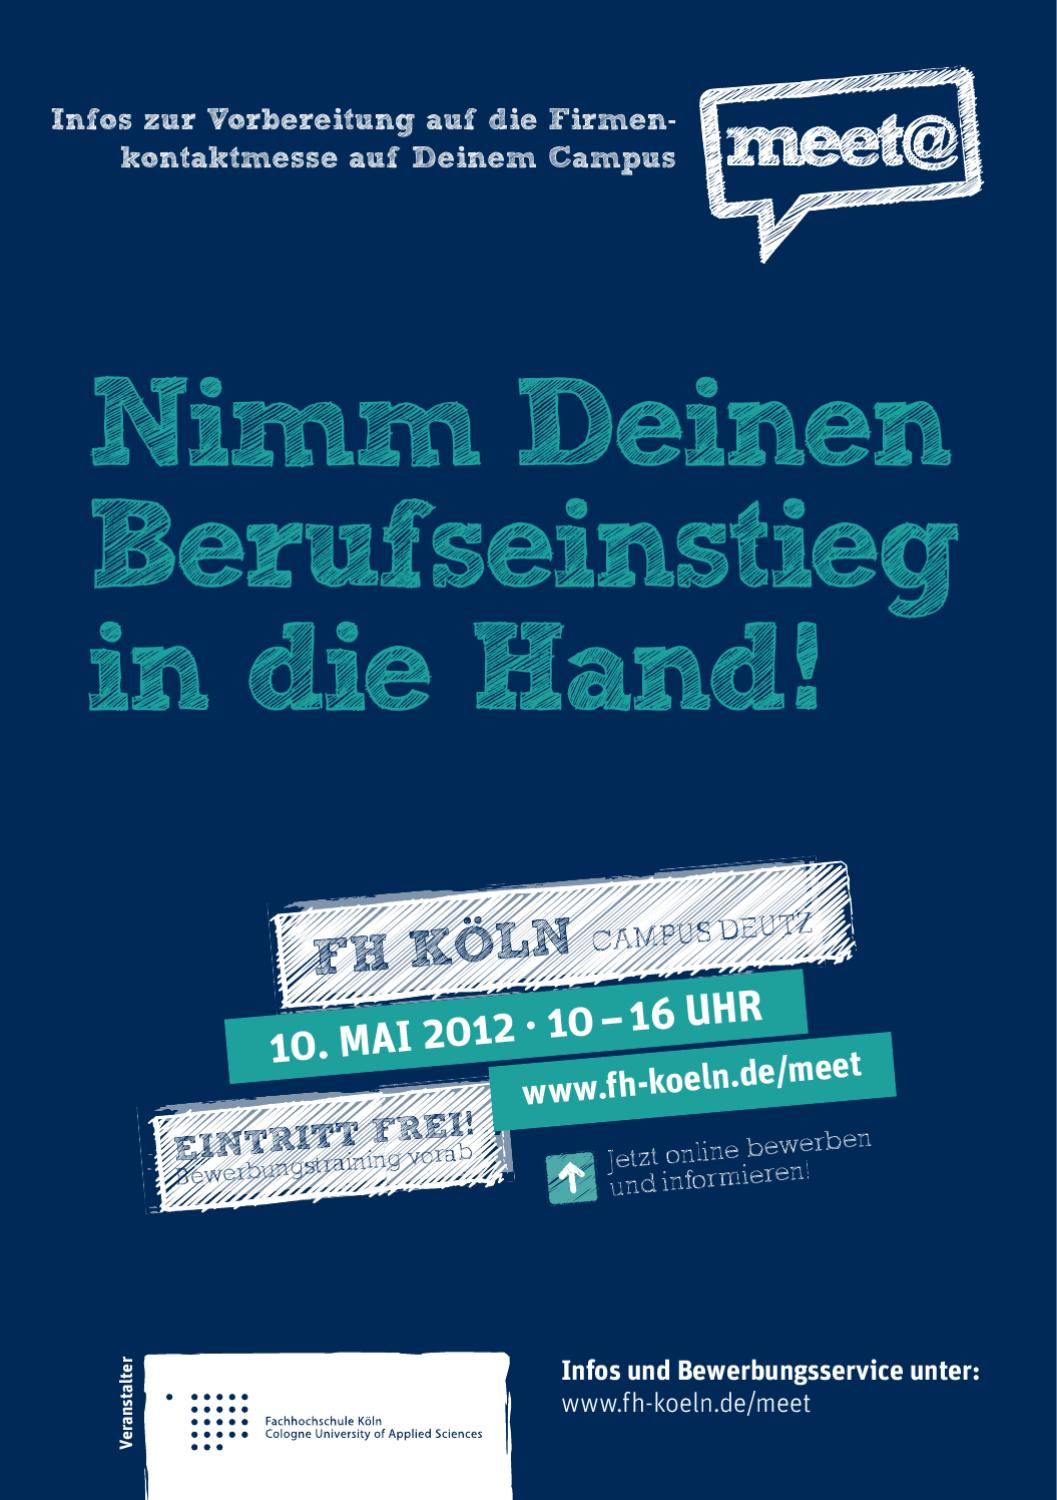 messeguide_meet_fh_koeln_2012 by iqb career services ag issuu - Fh Koln Bewerbung